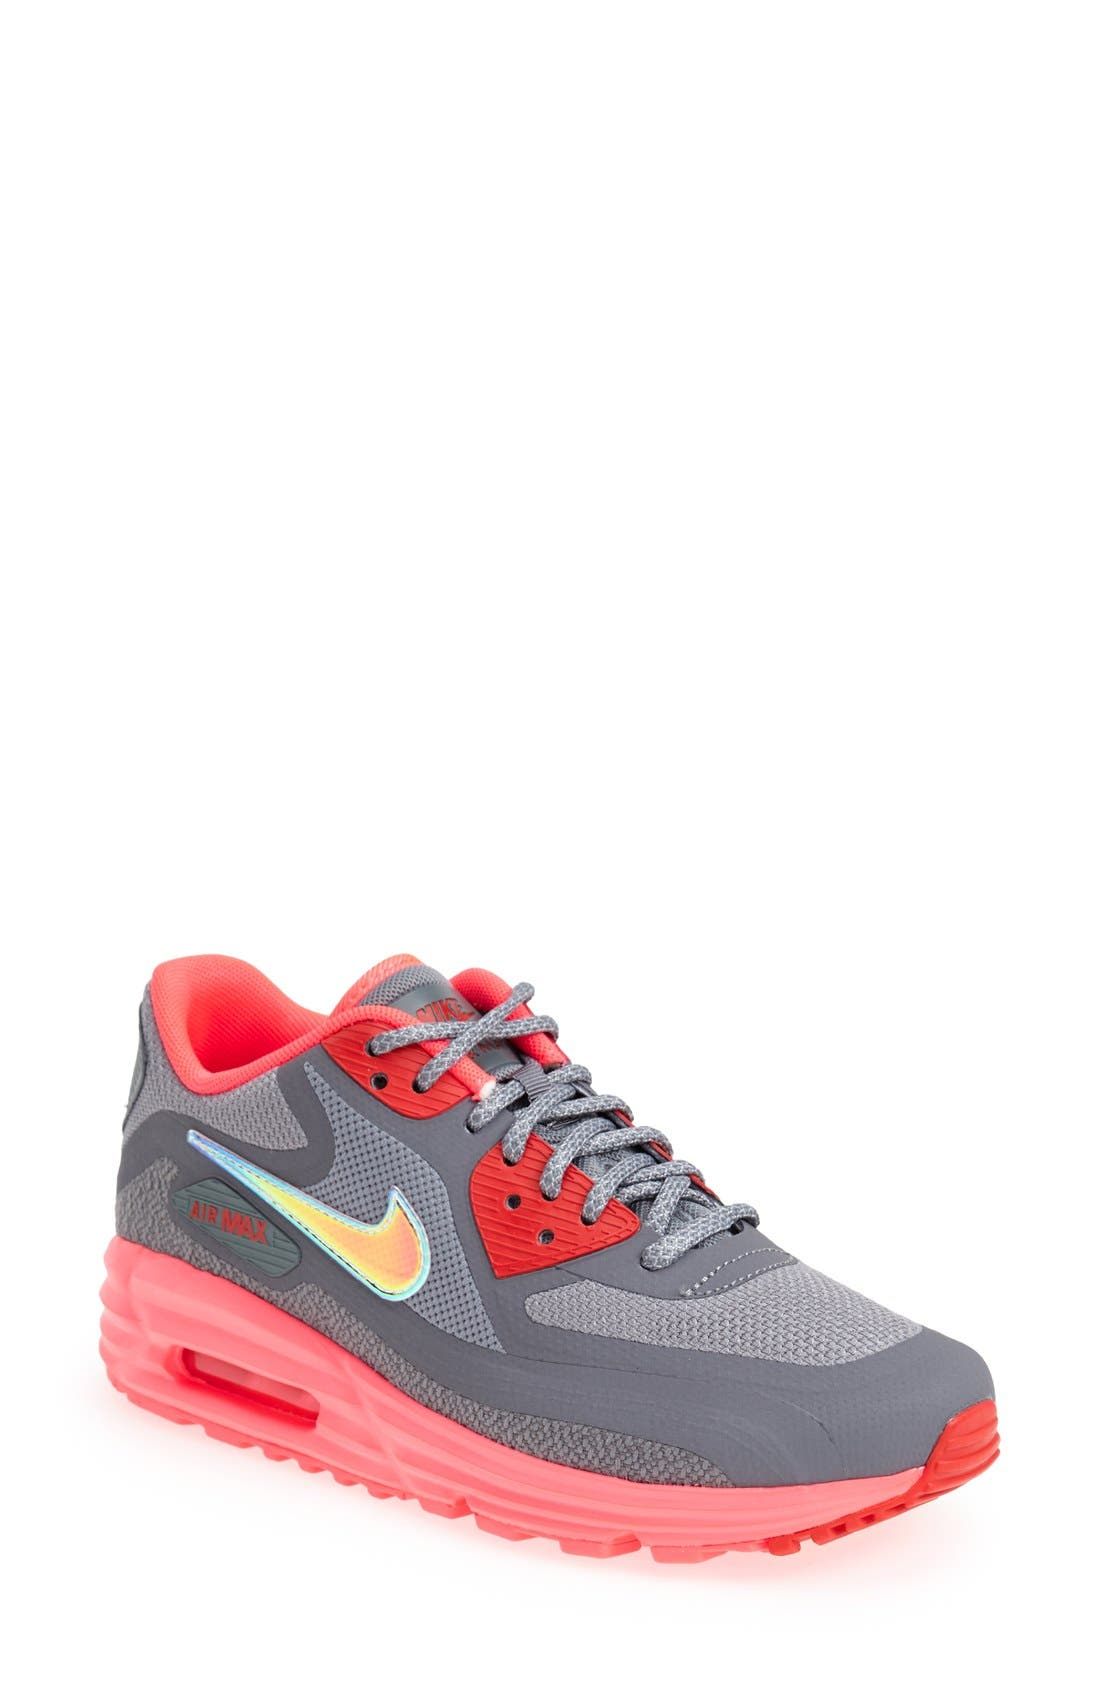 Main Image - Nike 'Air Max Lunar 90' Sneaker (Women)